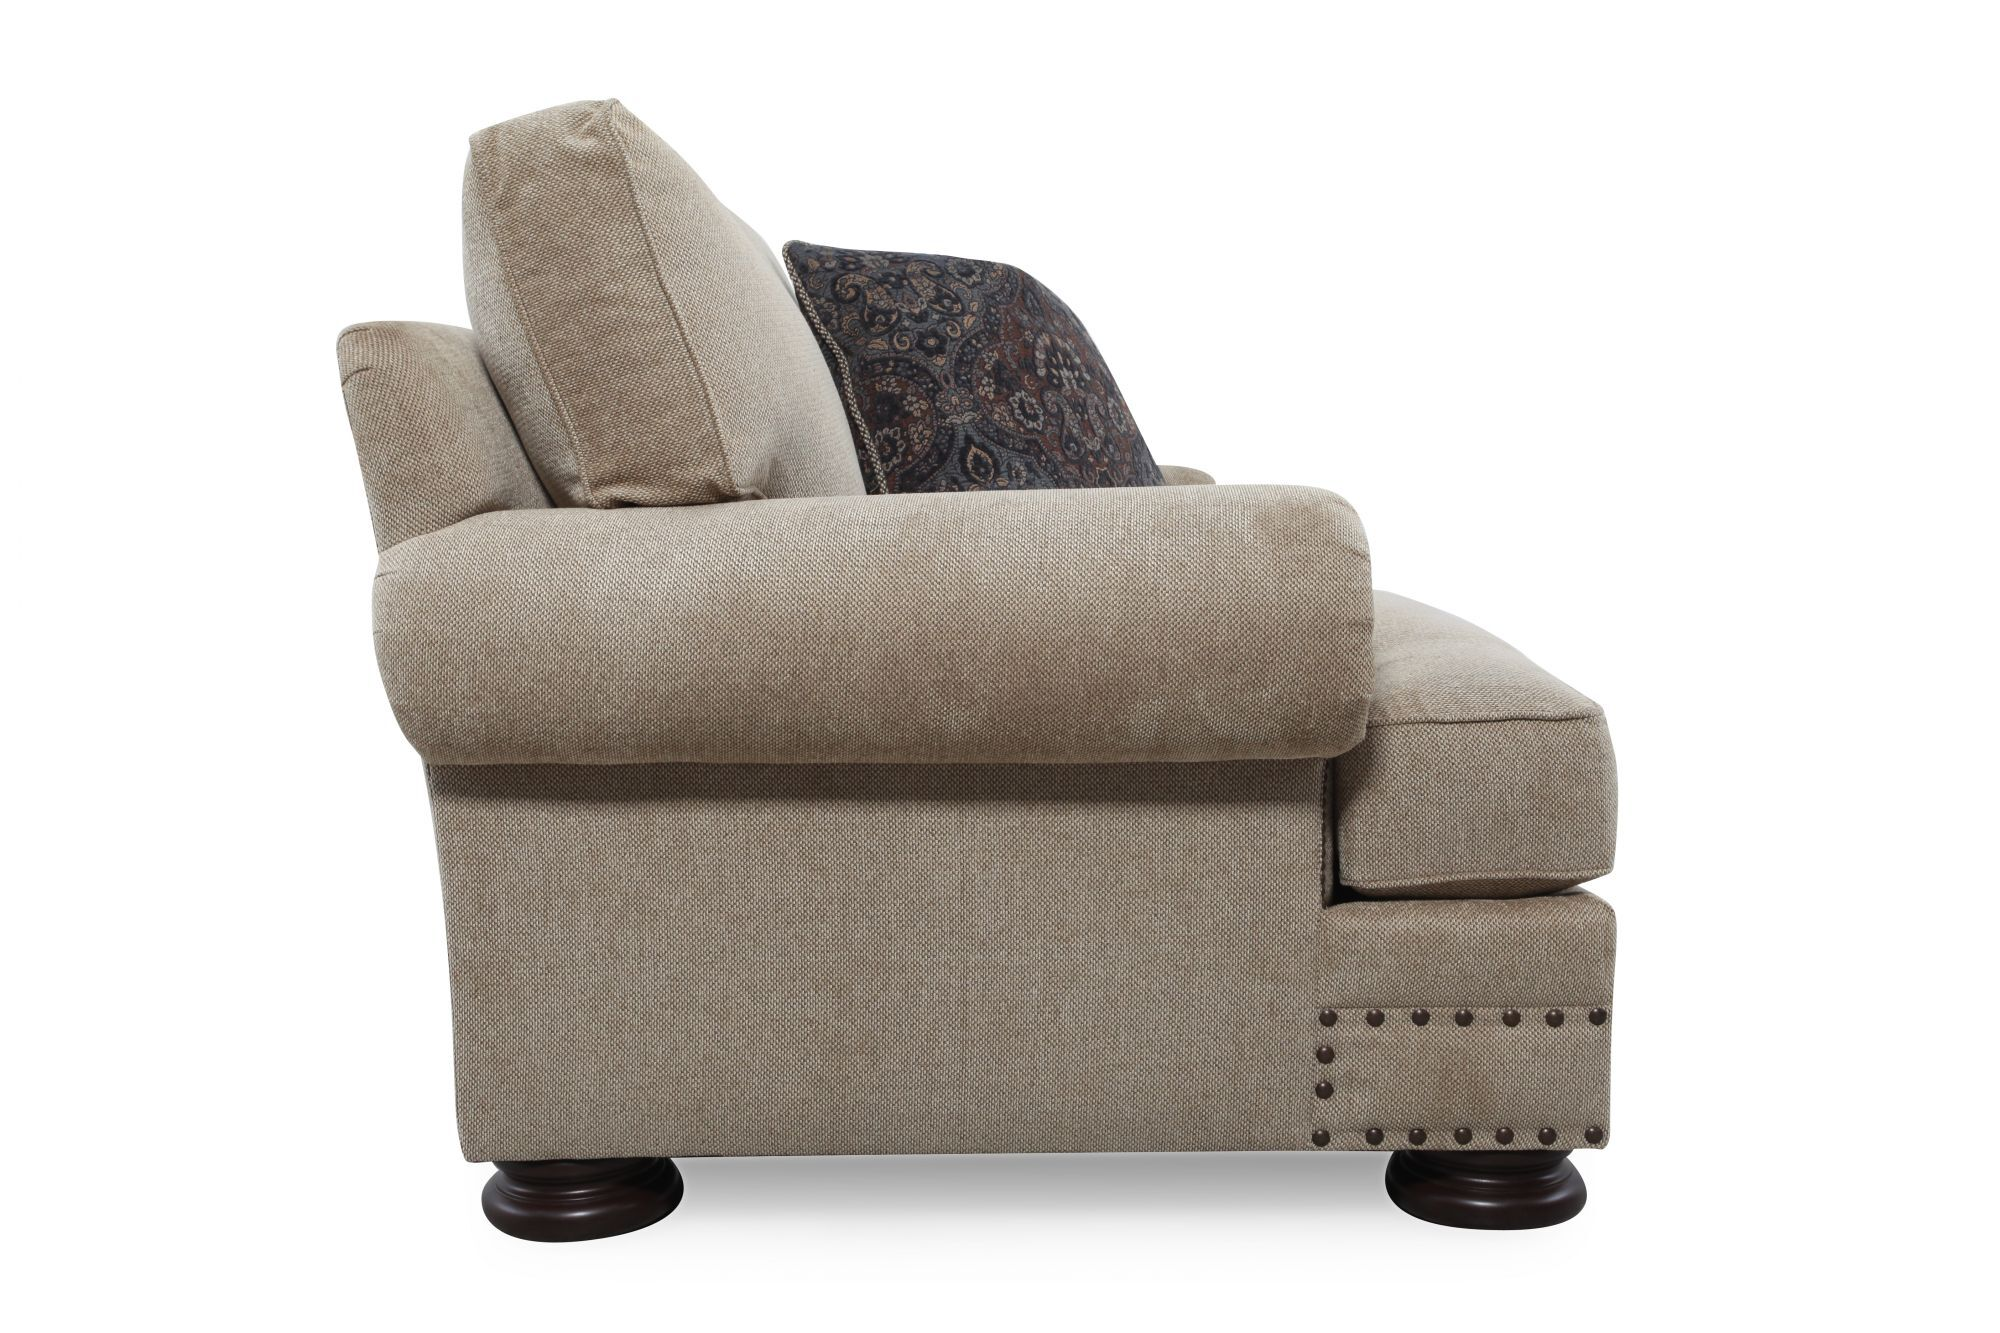 Nailhead Accented European Classic Chair In Beige